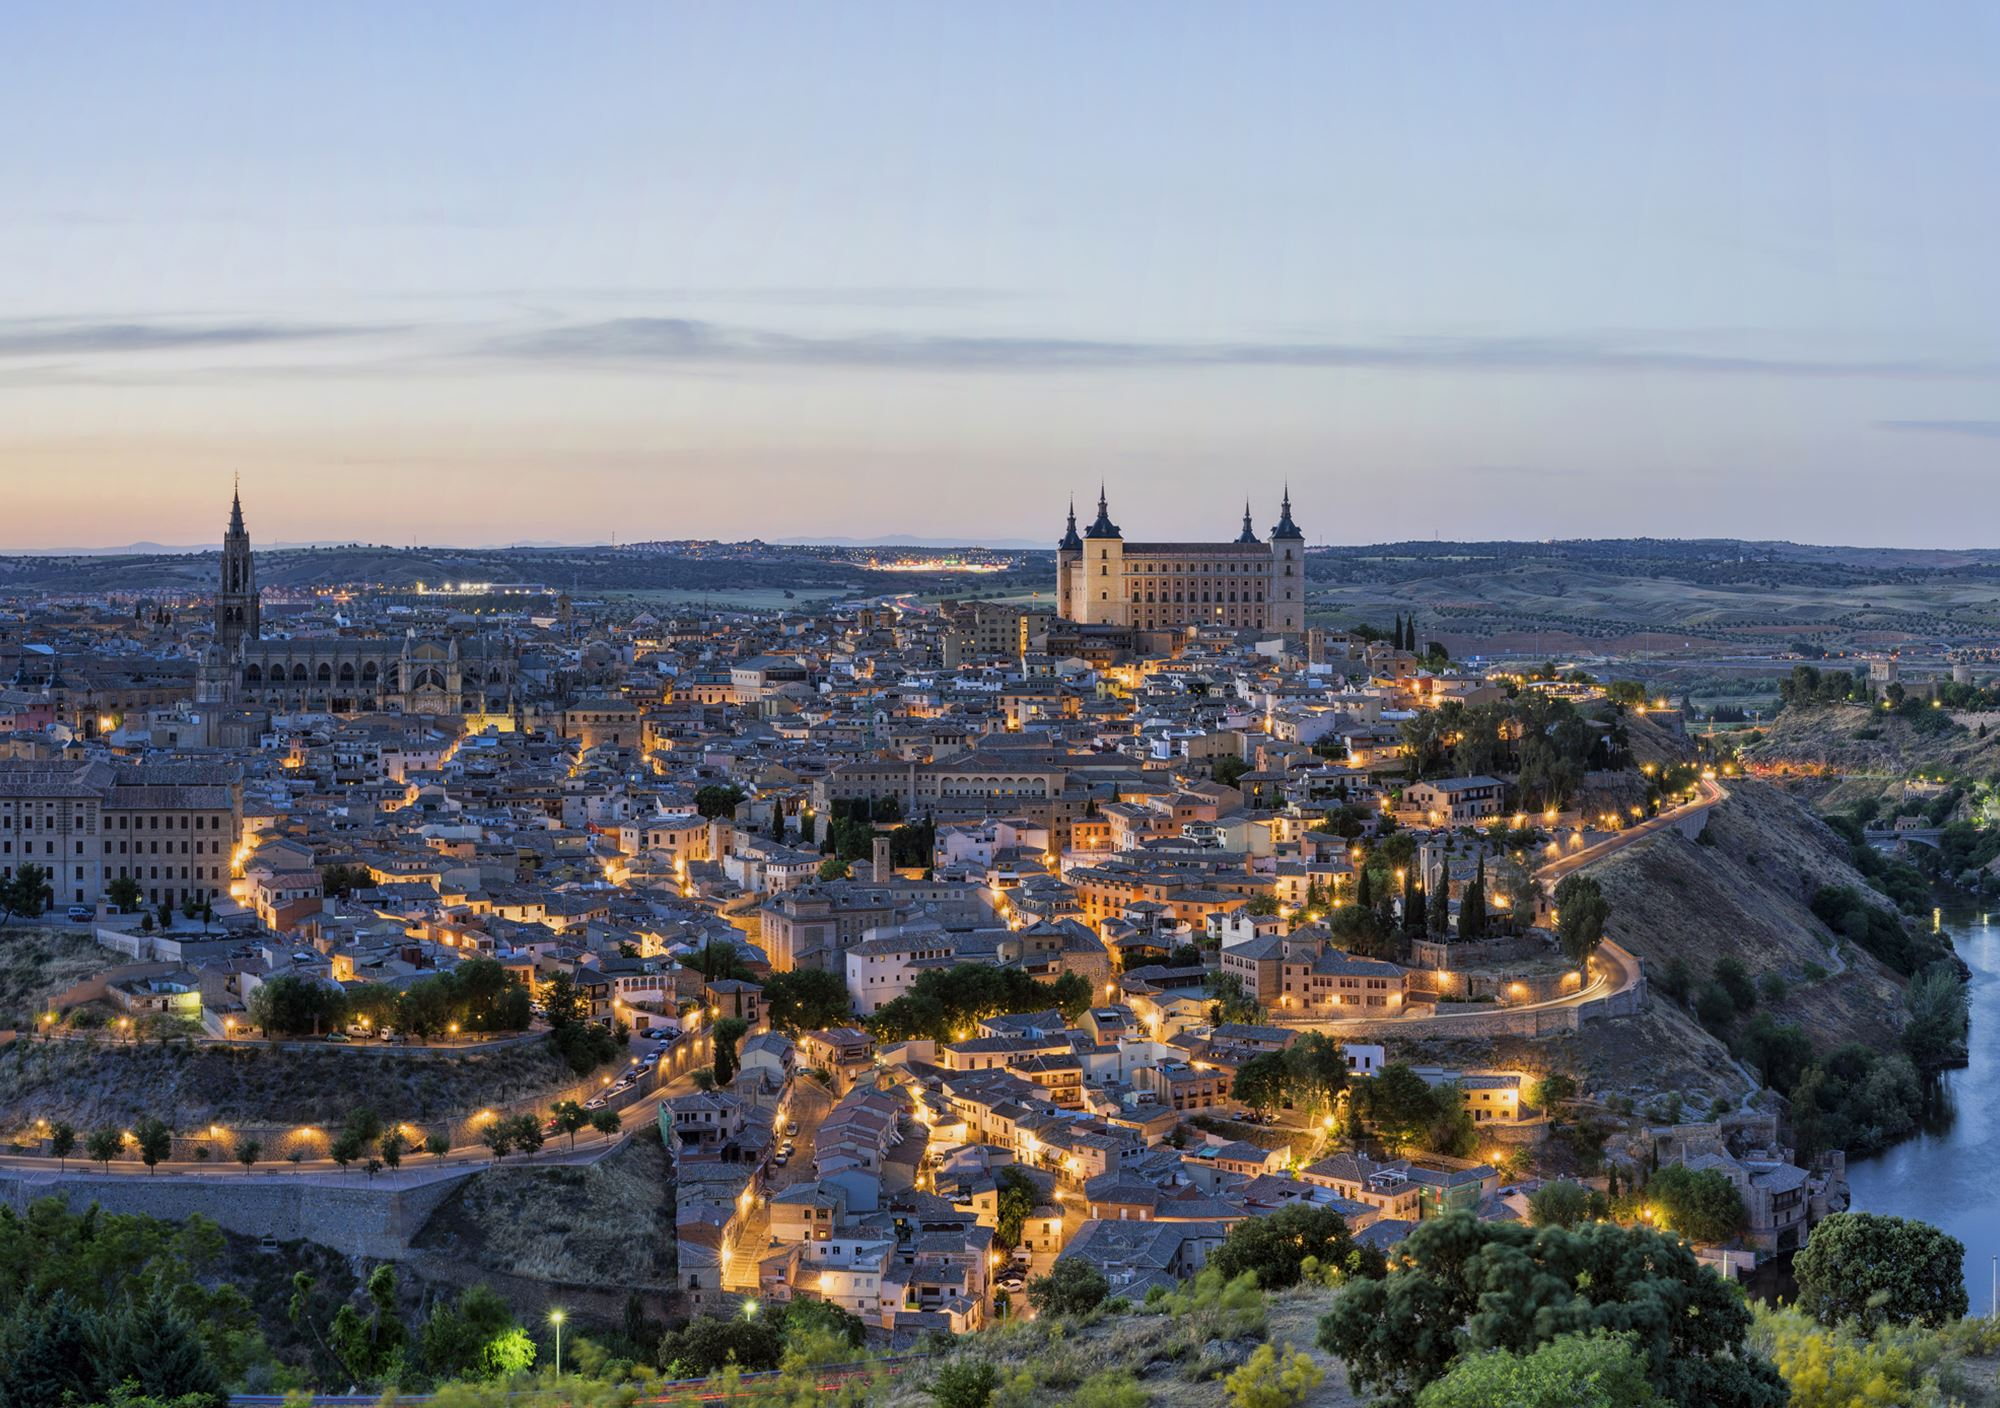 Excursions, trips, visits, attractions, tours and things to do in Toledo Spain